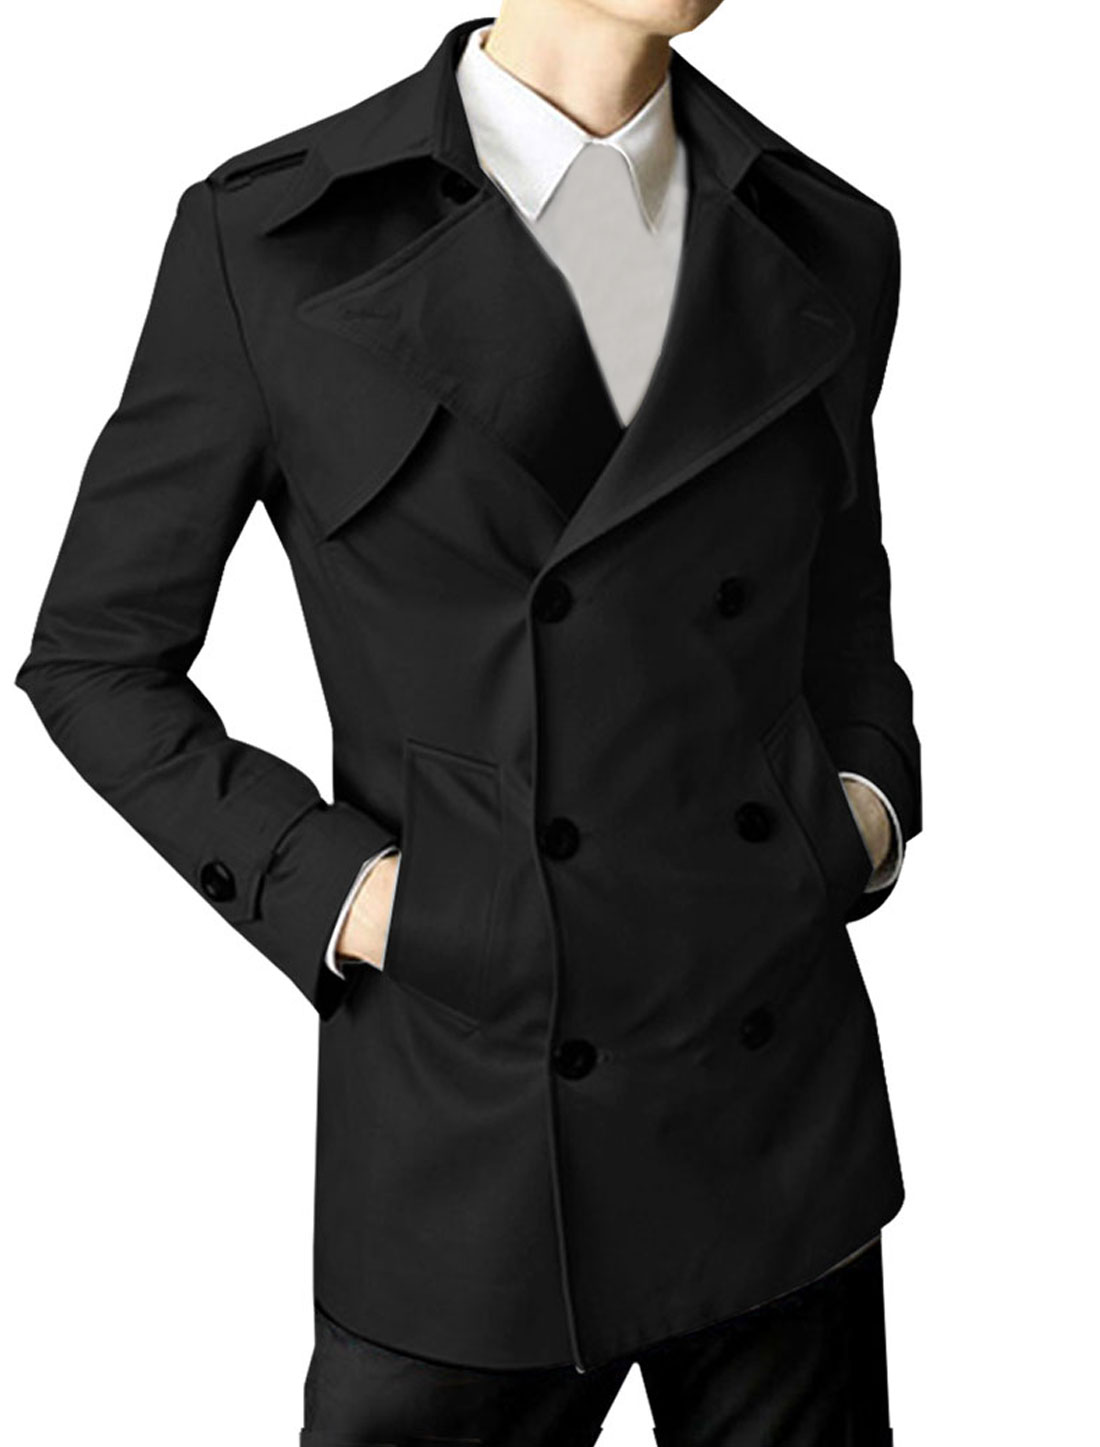 Mens Black Stylish Long Sleeve Peaked Lapel Slant Pockets Double Breasted Jacket M